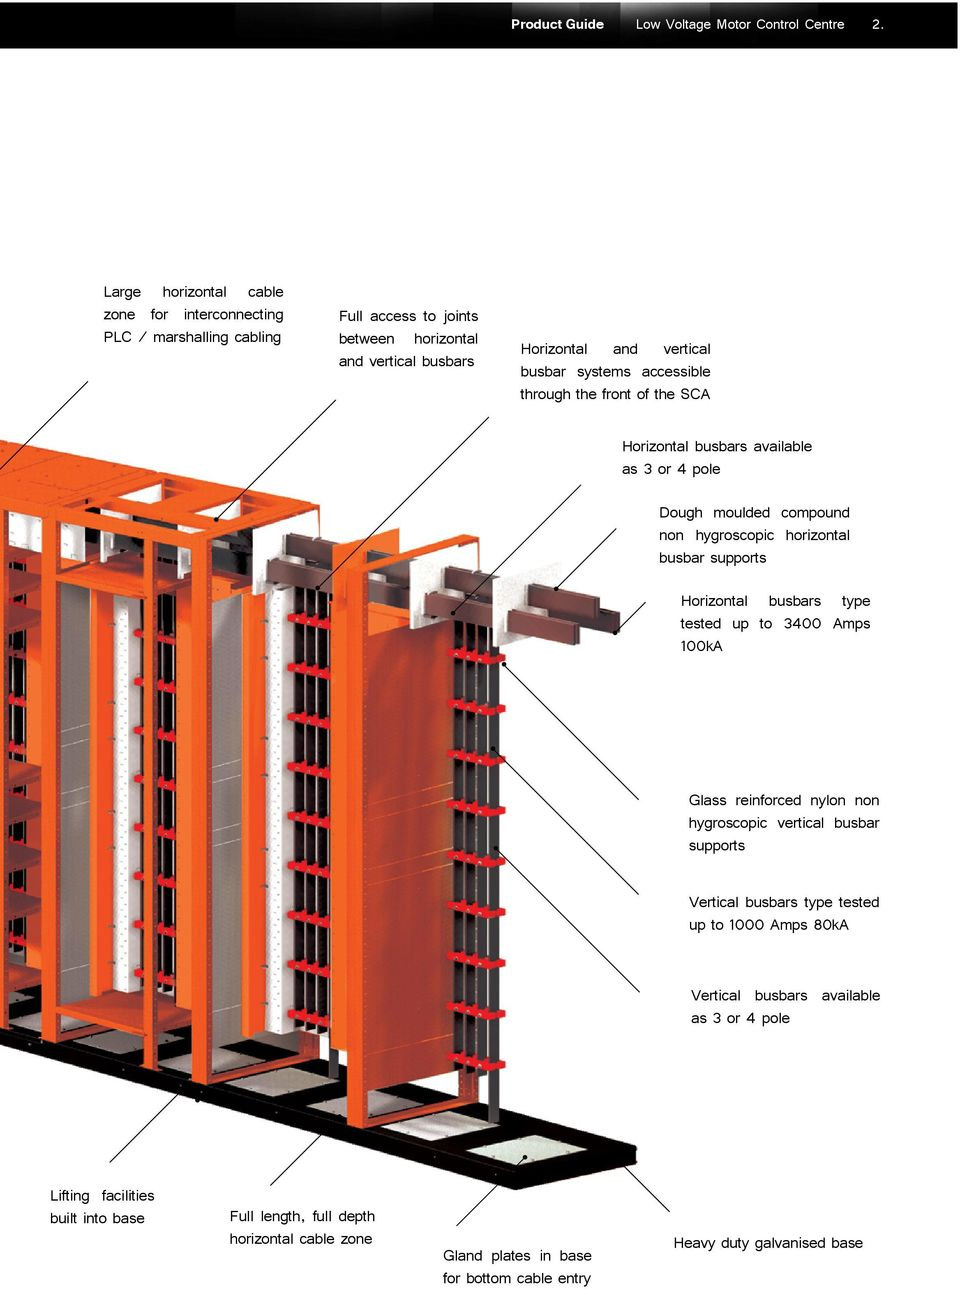 accessible through the front of the SCA Horizontal busbars available as 3 or 4 pole Dough moulded compound non hygroscopic horizontal busbar supports Horizontal busbars type tested up